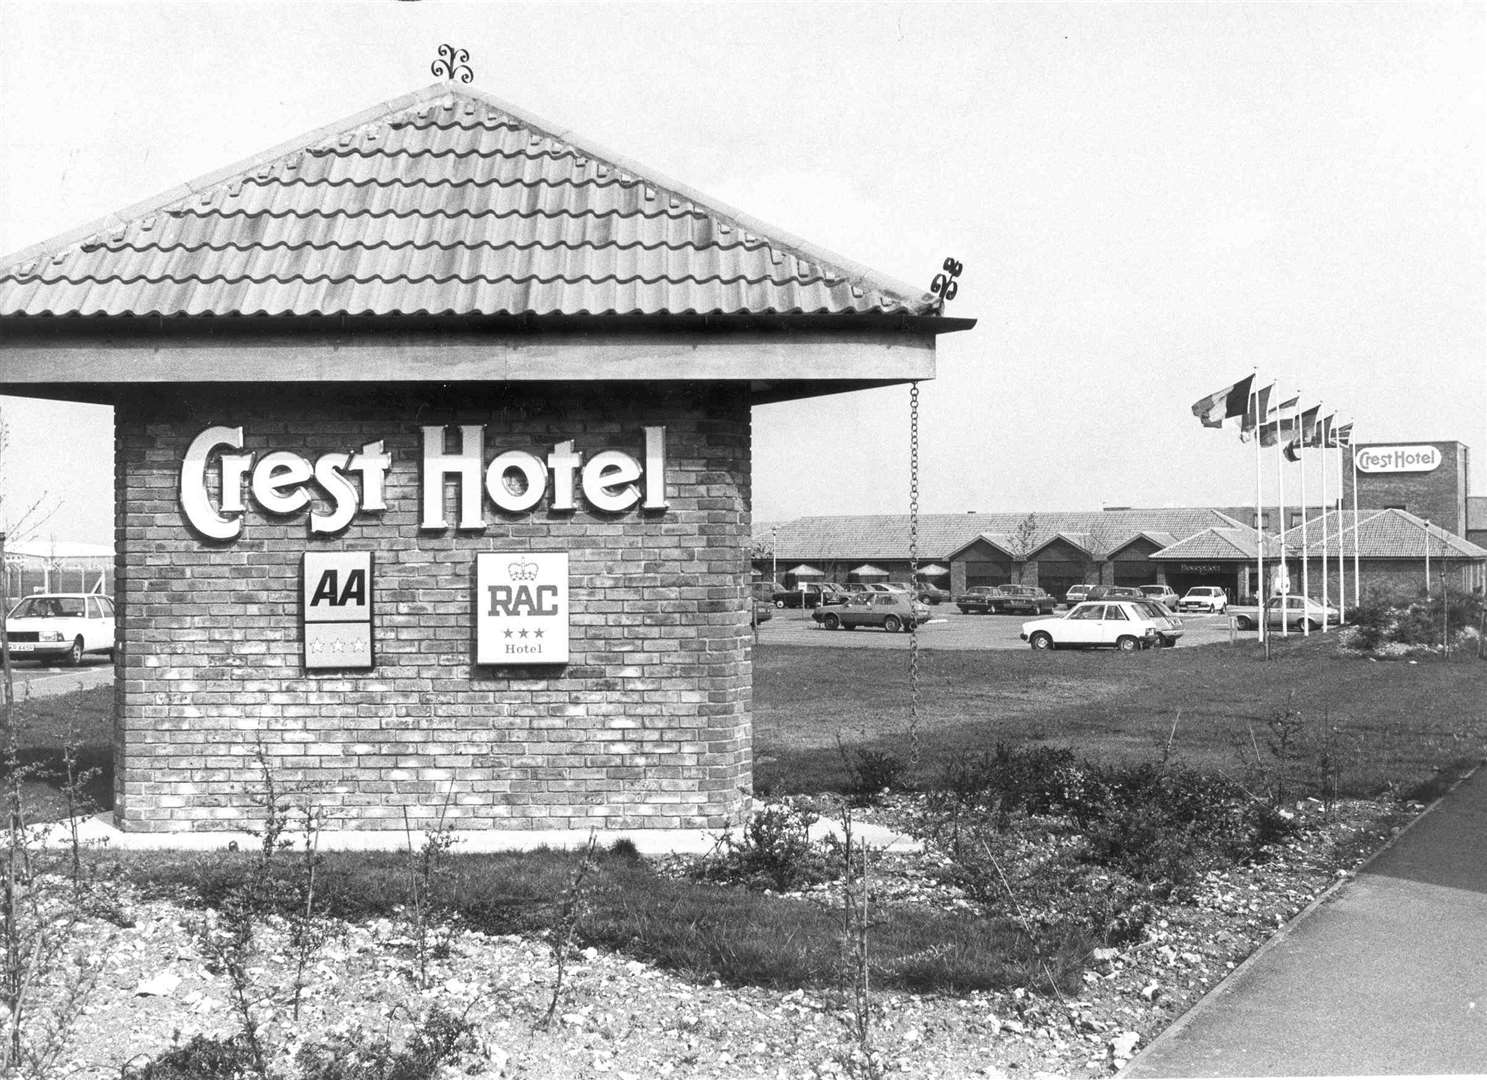 Crest Hotel Rochester - April 1984